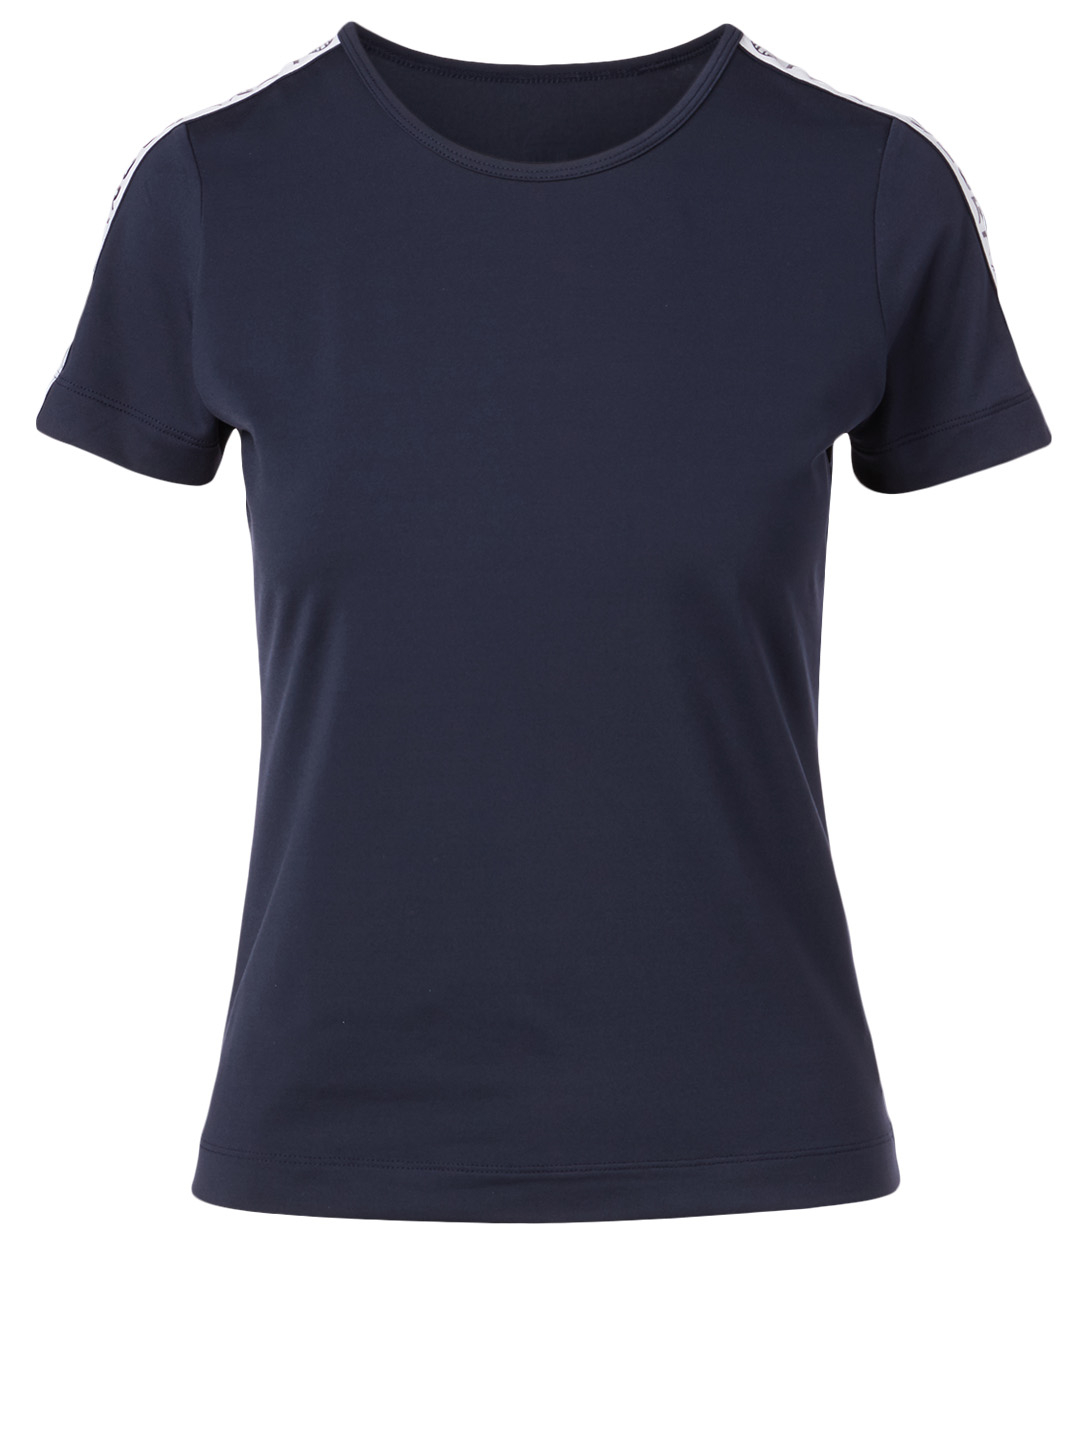 TORY SPORT Performance Banner T-Shirt Women's Blue